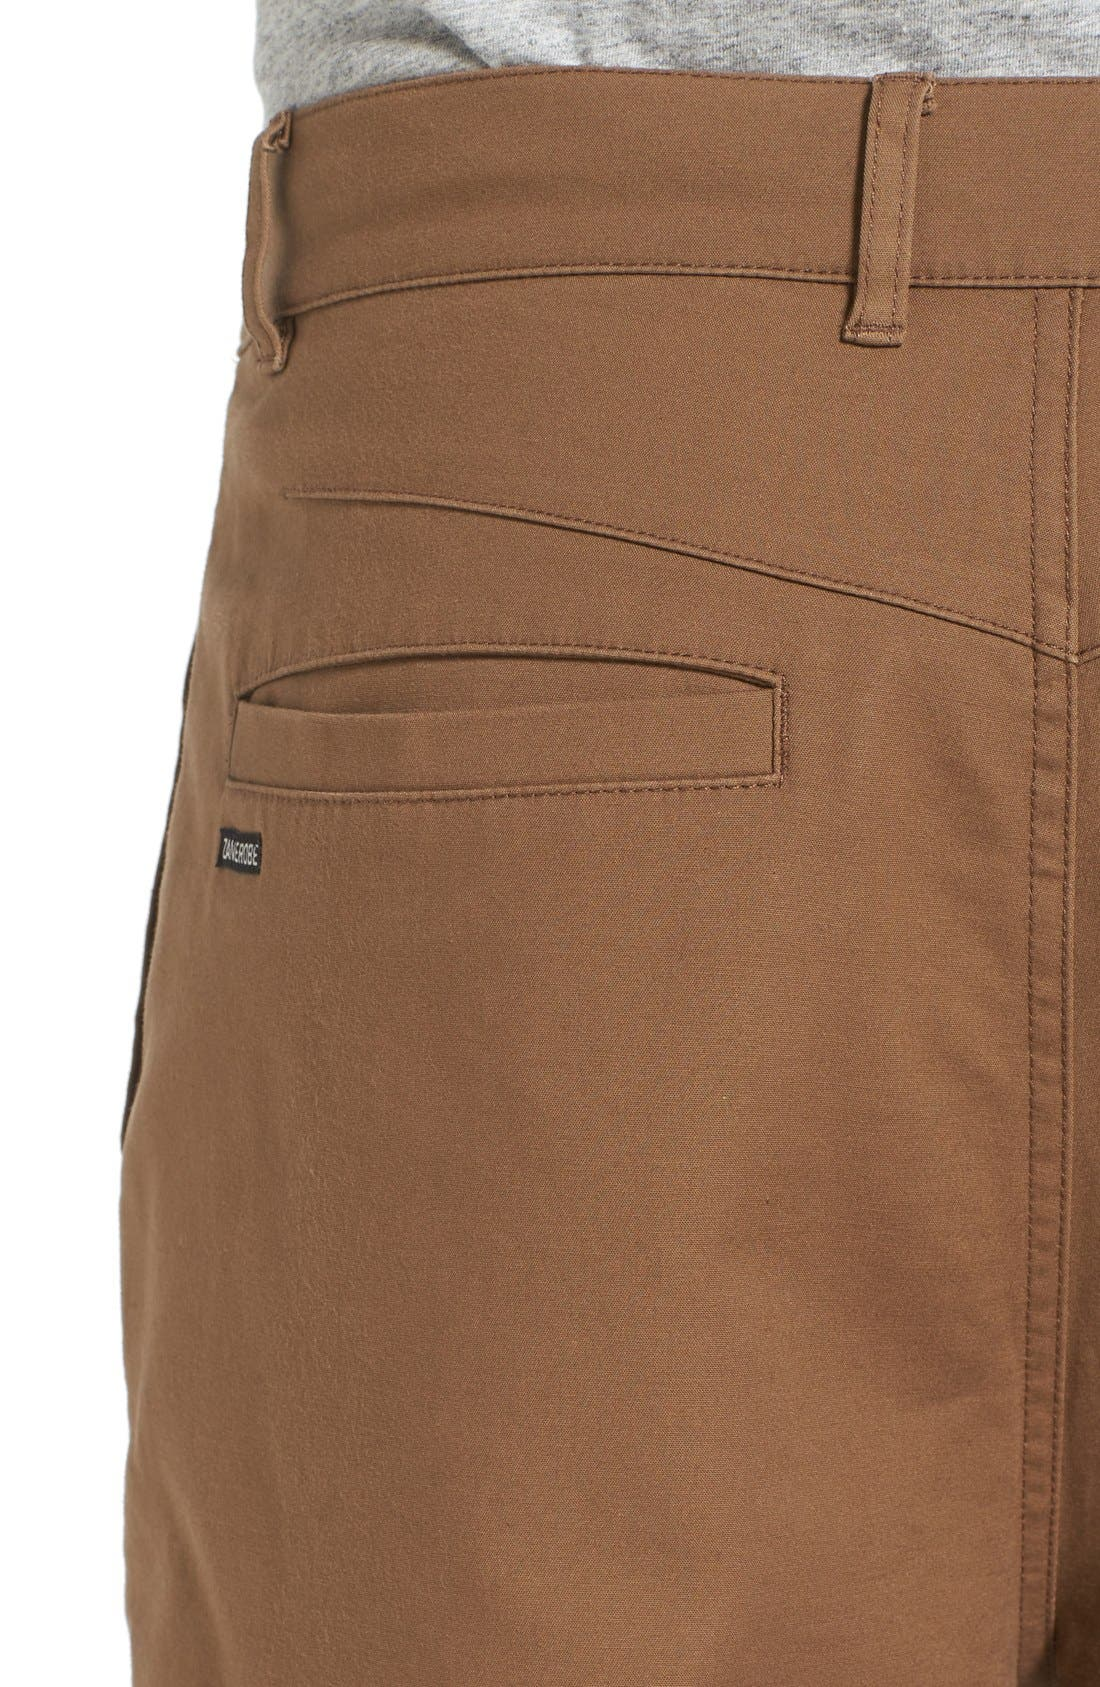 'Sharpshot' Slouchy Skinny Fit Chinos,                             Alternate thumbnail 19, color,